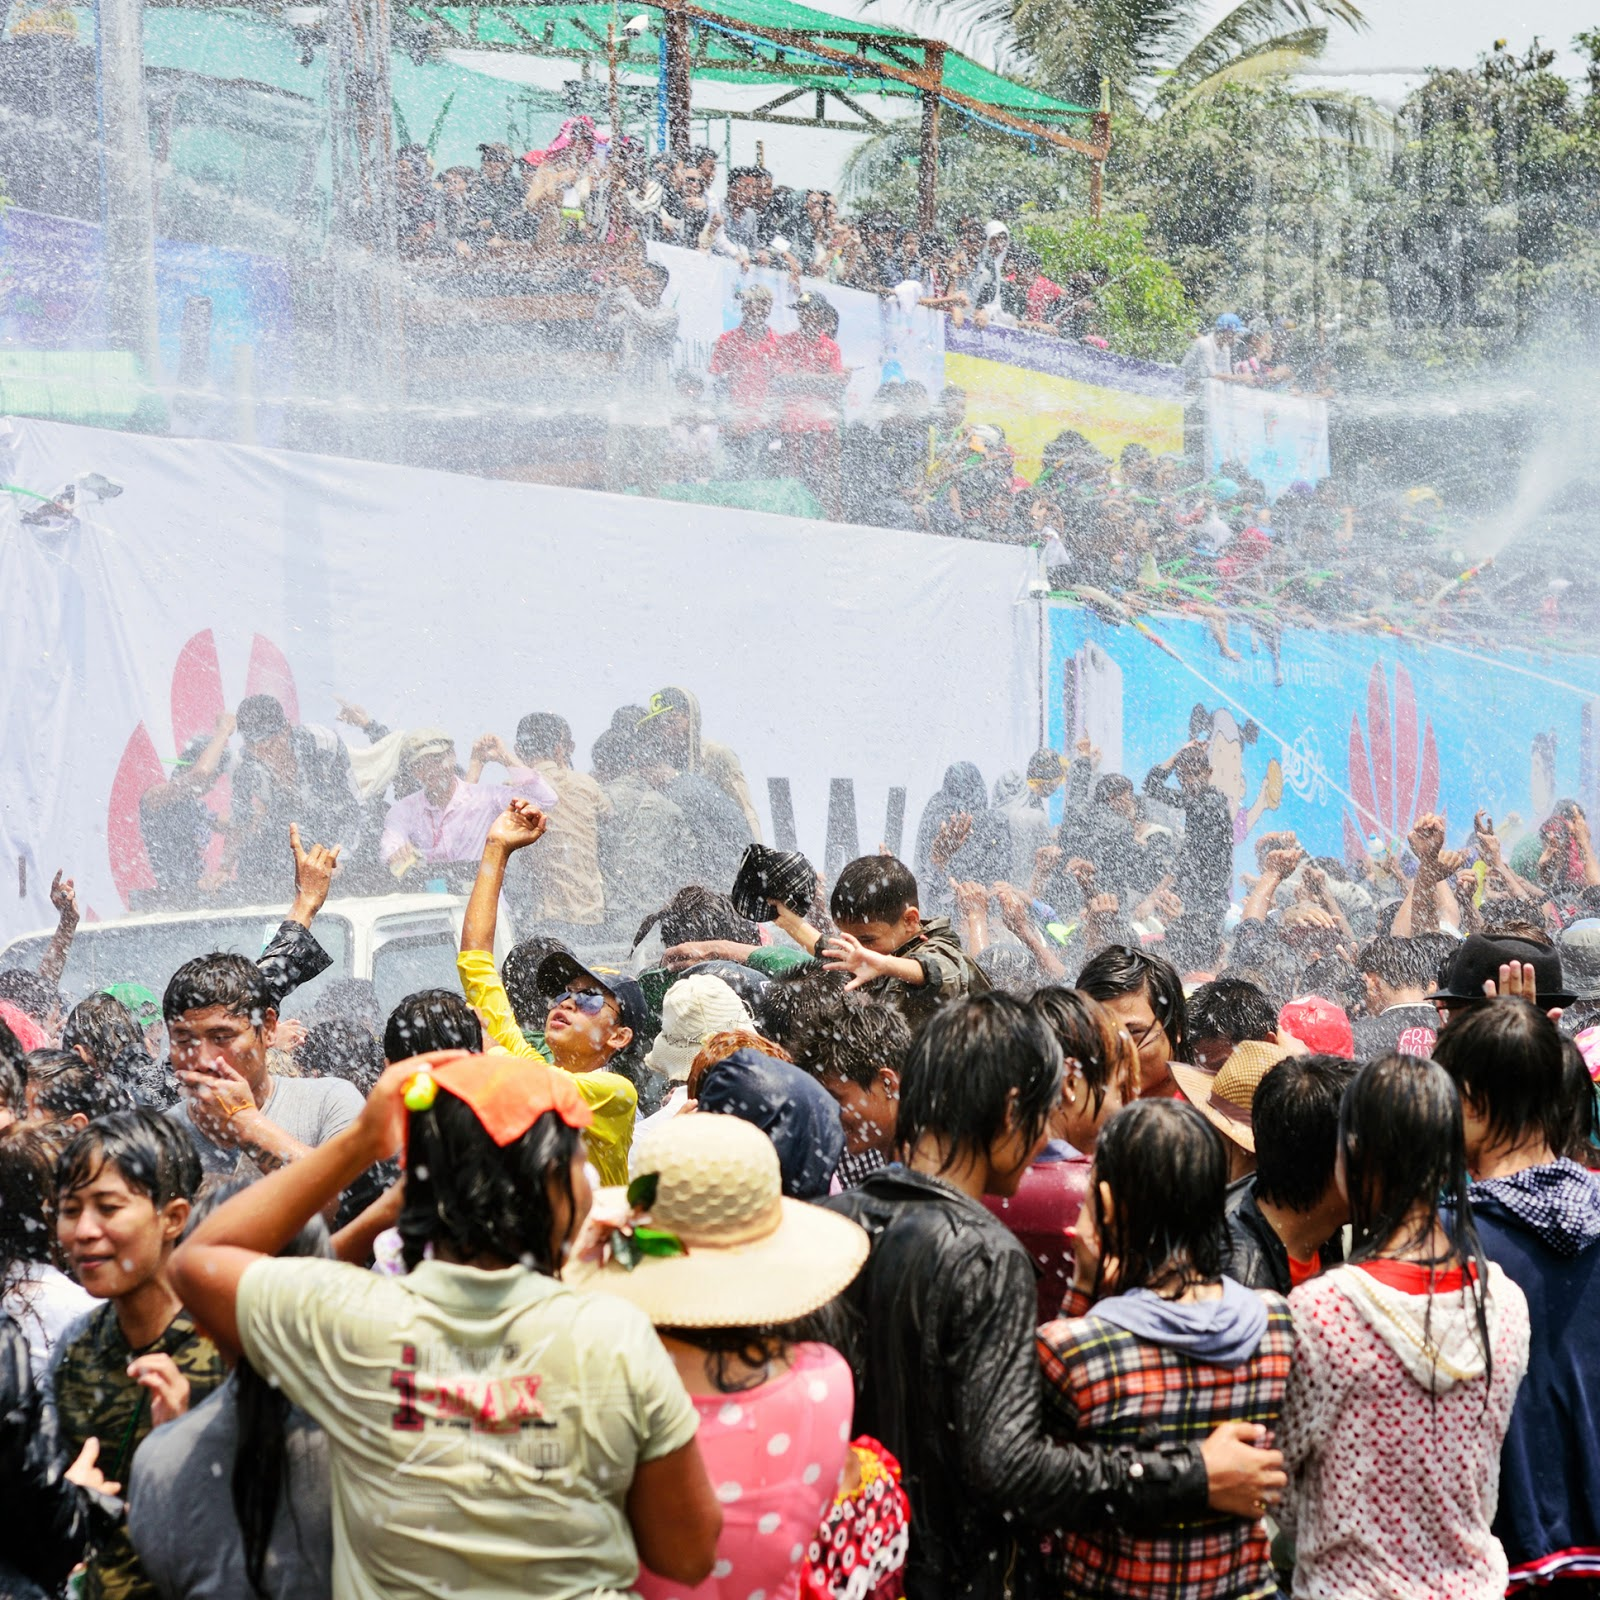 A crowd of people getting wet near Inya Lake, Yangon, during Myanmar's water festival.